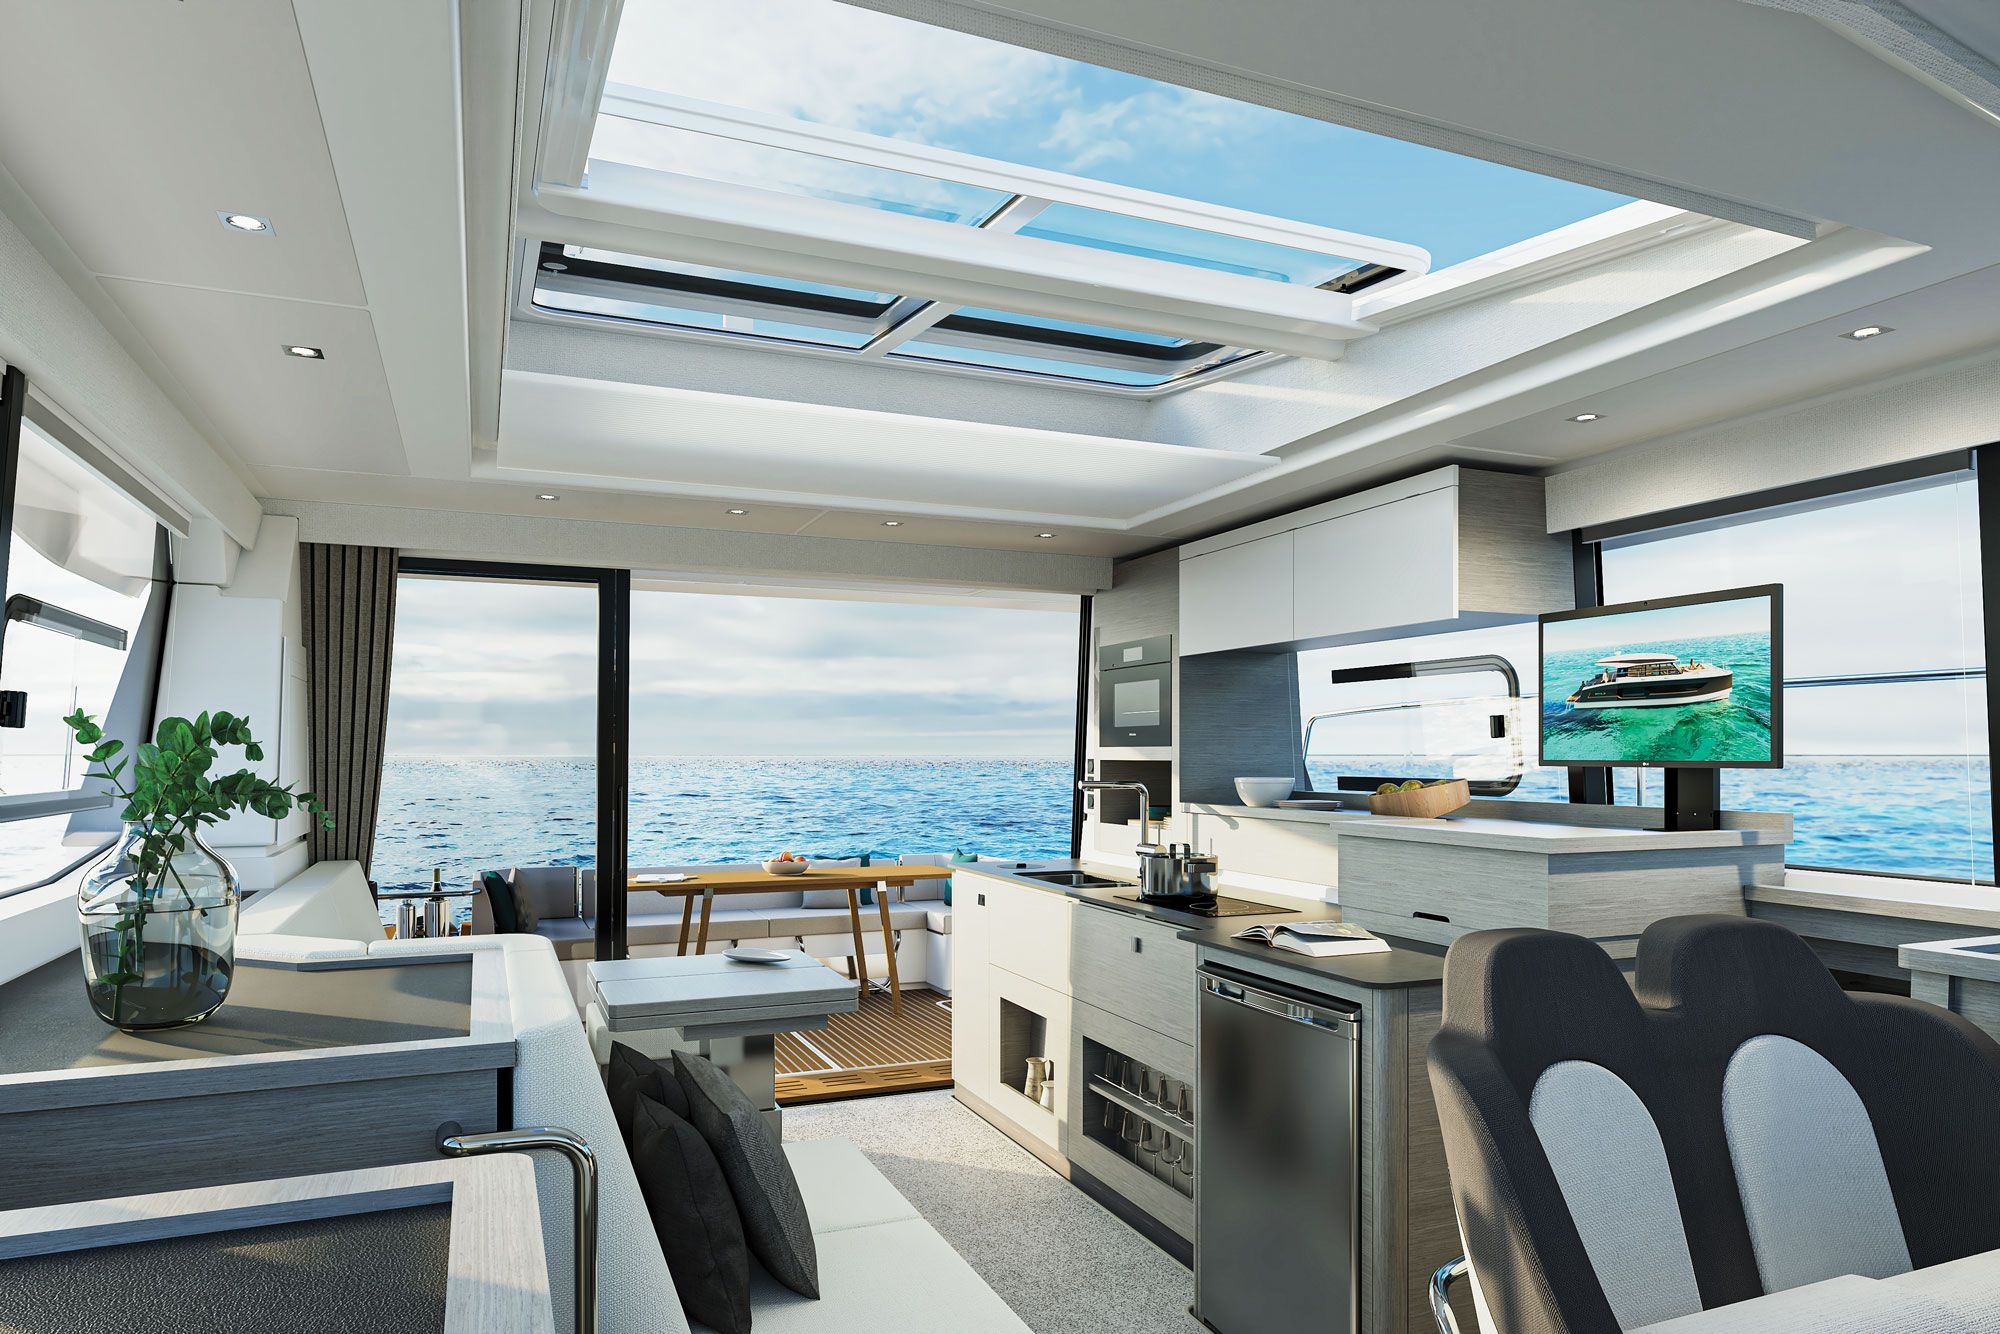 An electrically operated skylight is optional.